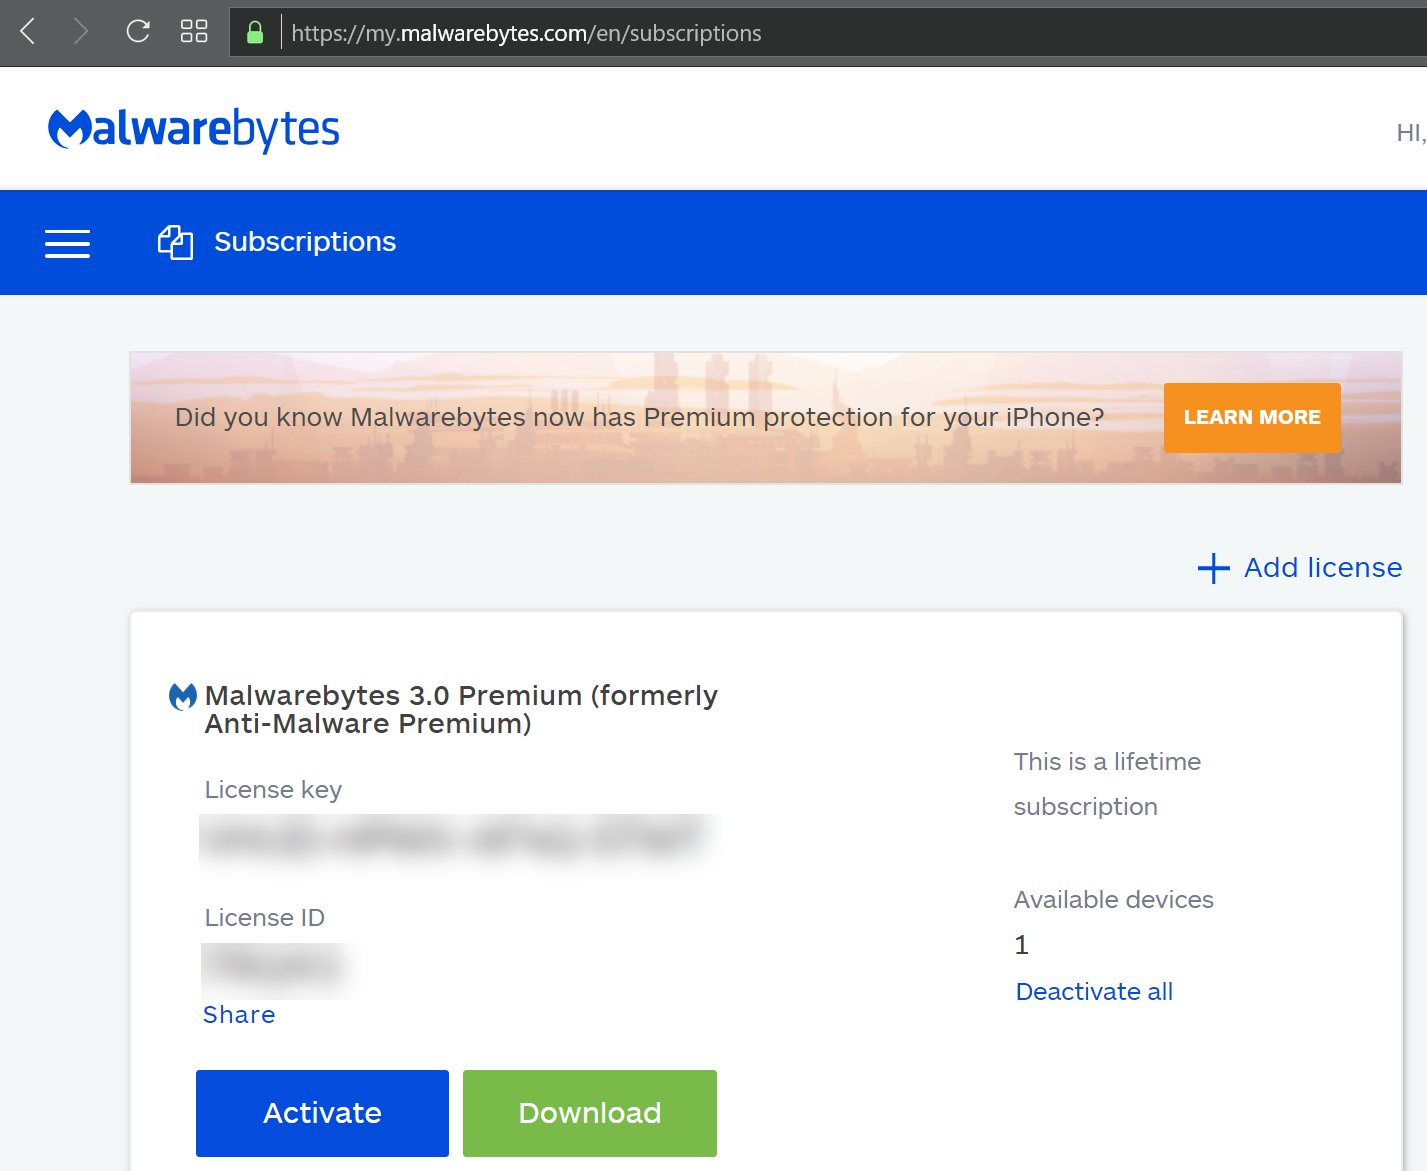 [Lifetime Account] Malwarebytes Premium - Windows (2019 Latest Version)  [Read Description]